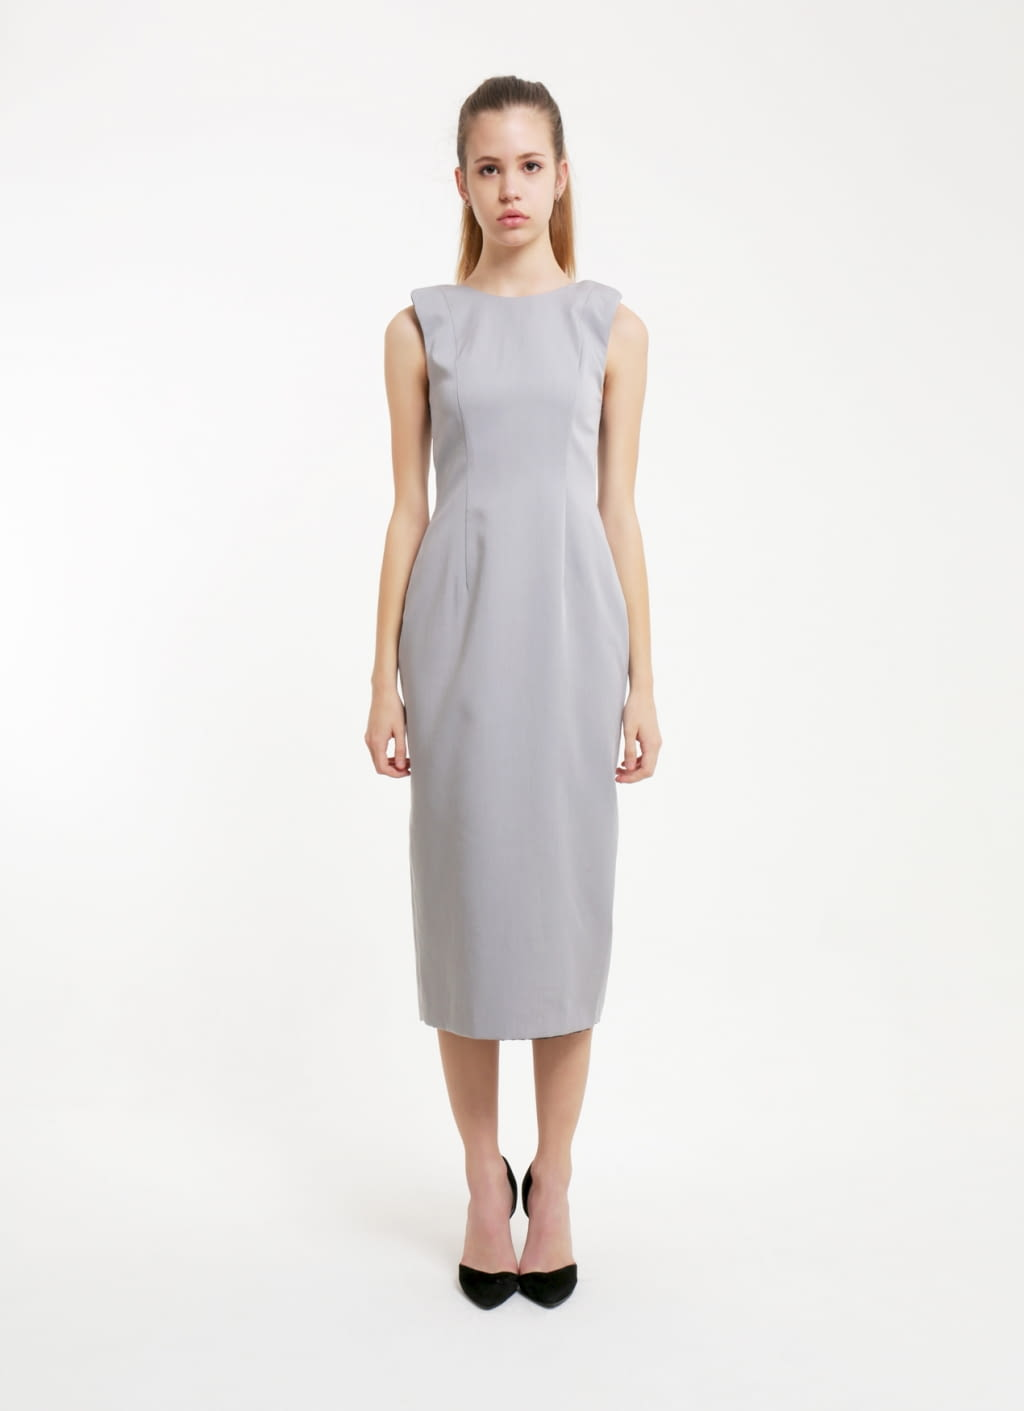 Buy original amanda rahardjo light gray demure dress at indonesia amanda rahardjo light gray demure dress ombrellifo Choice Image